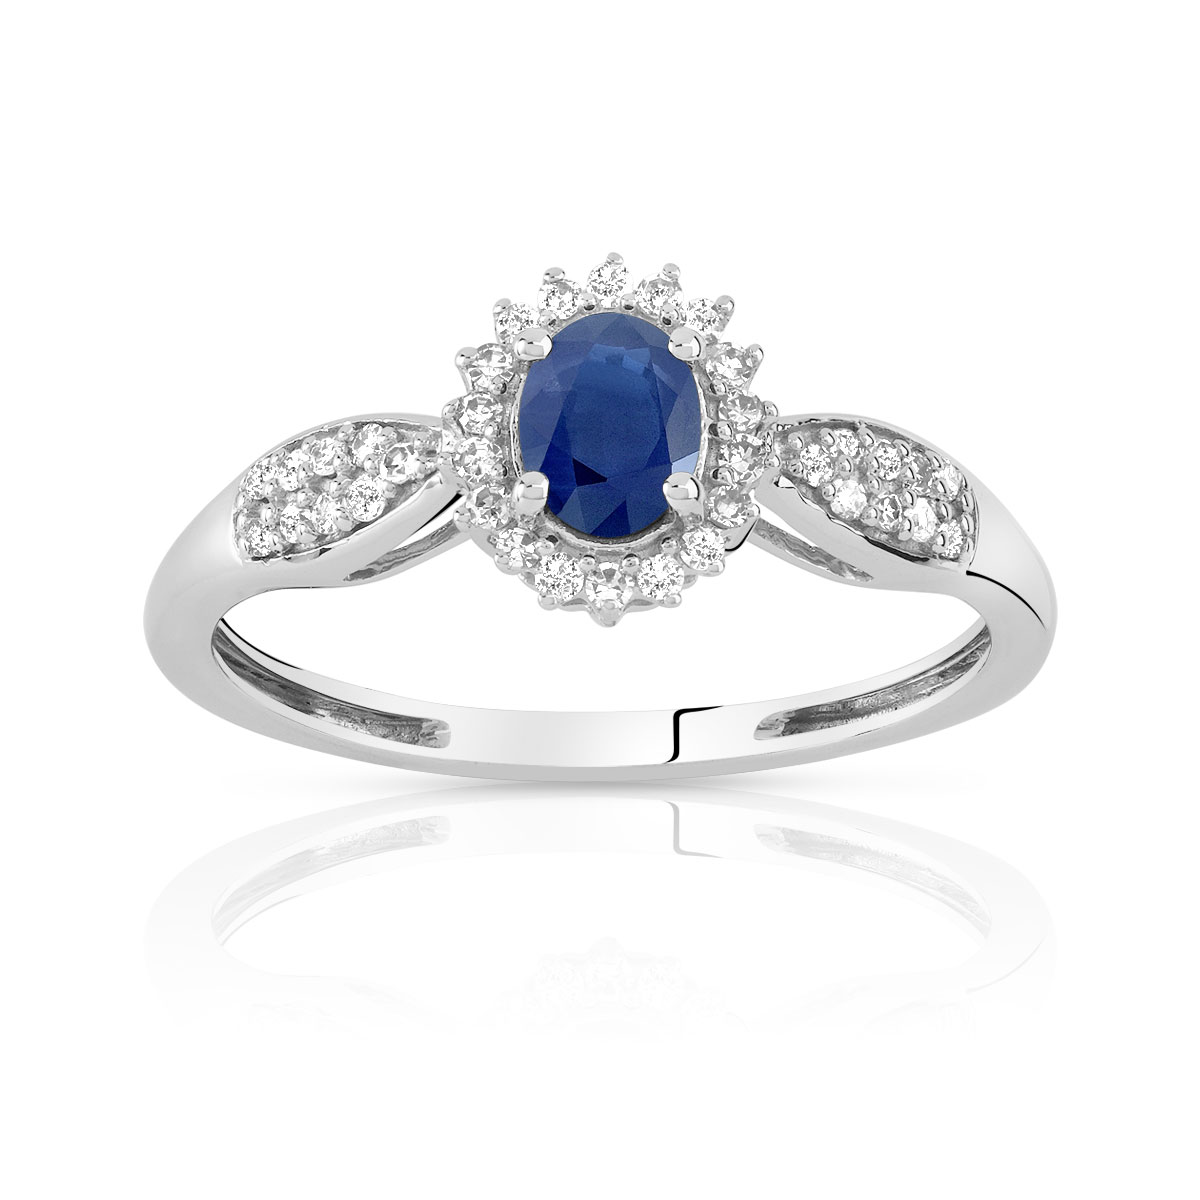 Bague en Or 750 Saphir et Diamants - vue 1